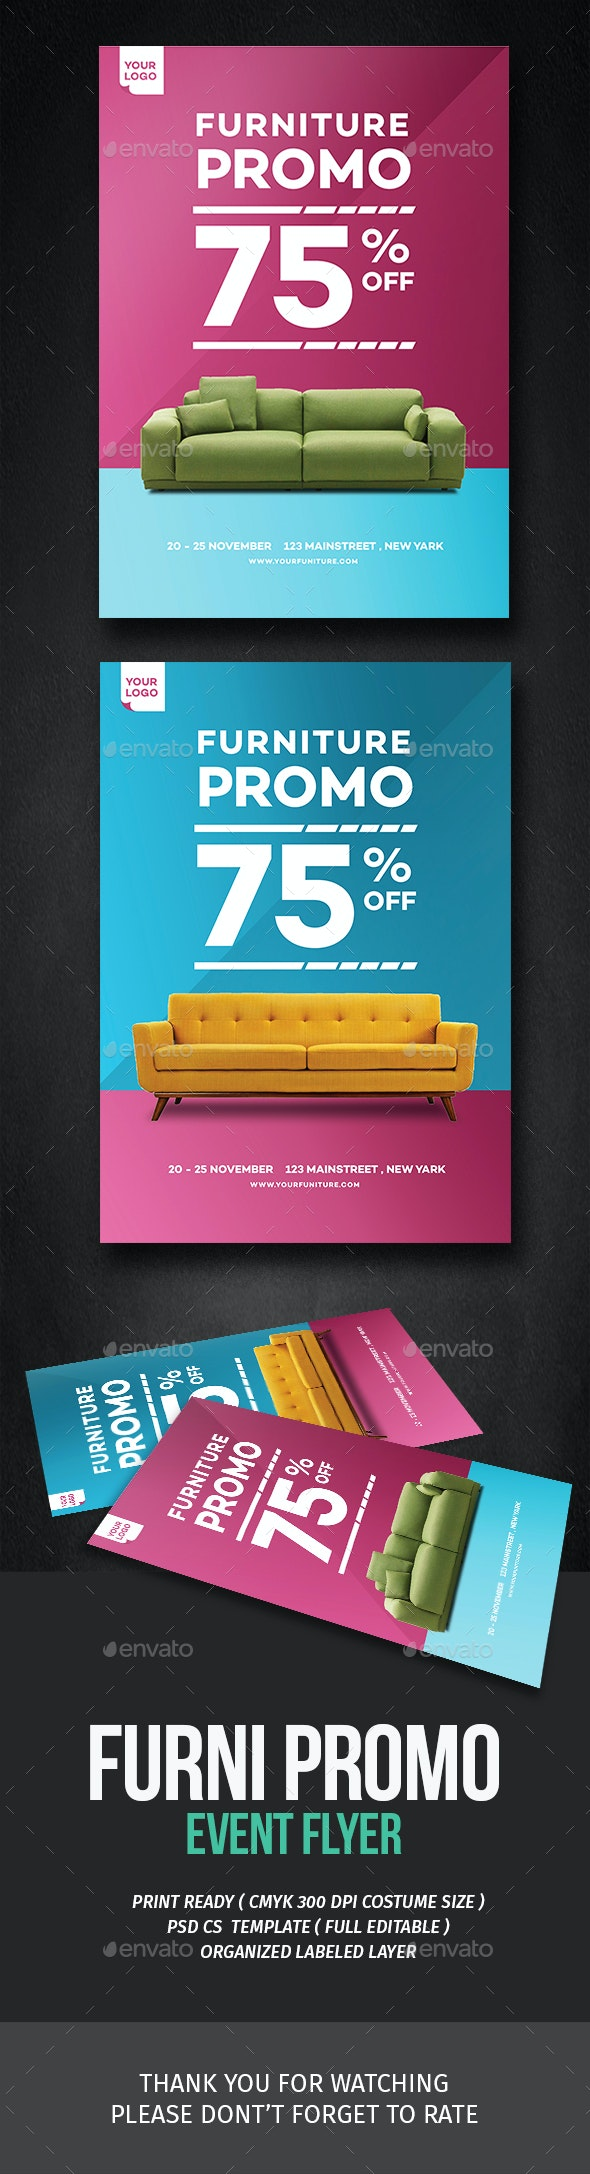 Home Furniture Promo Flyer - Commerce Flyers